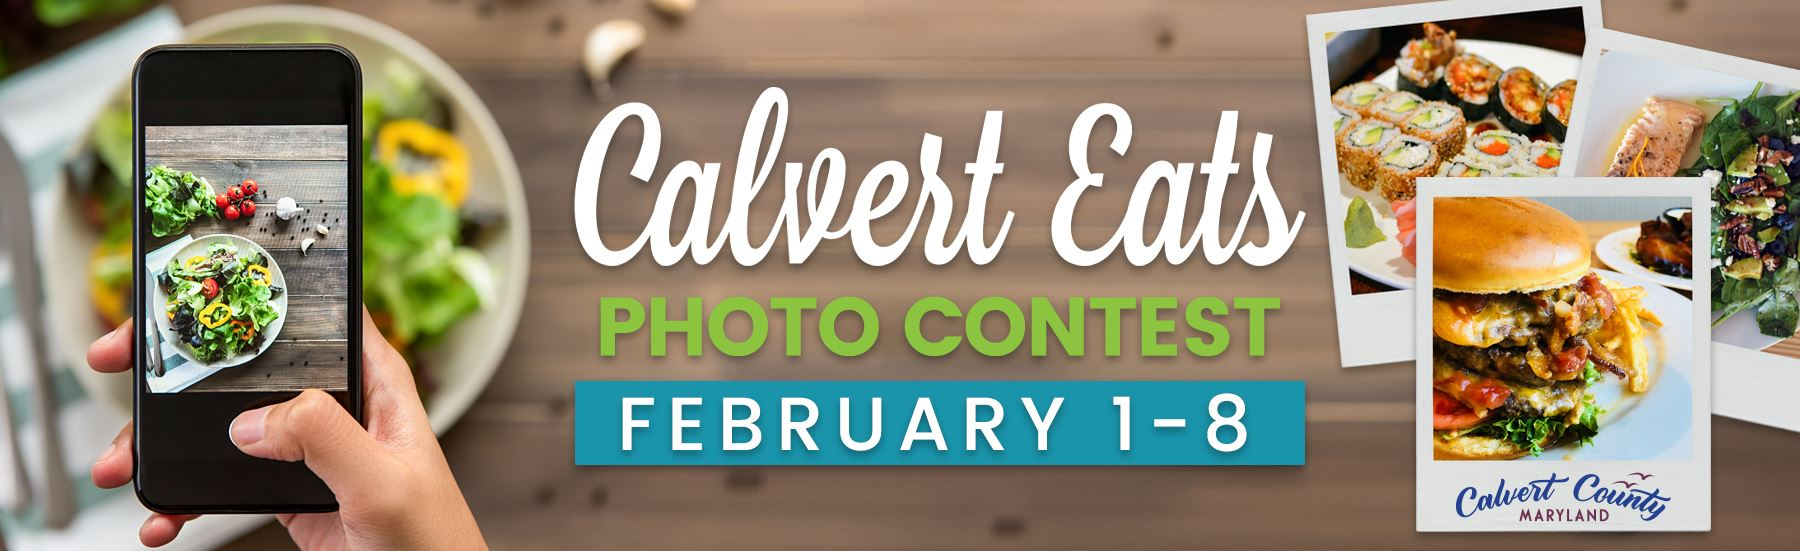 February Food Photo Contest Website Banner